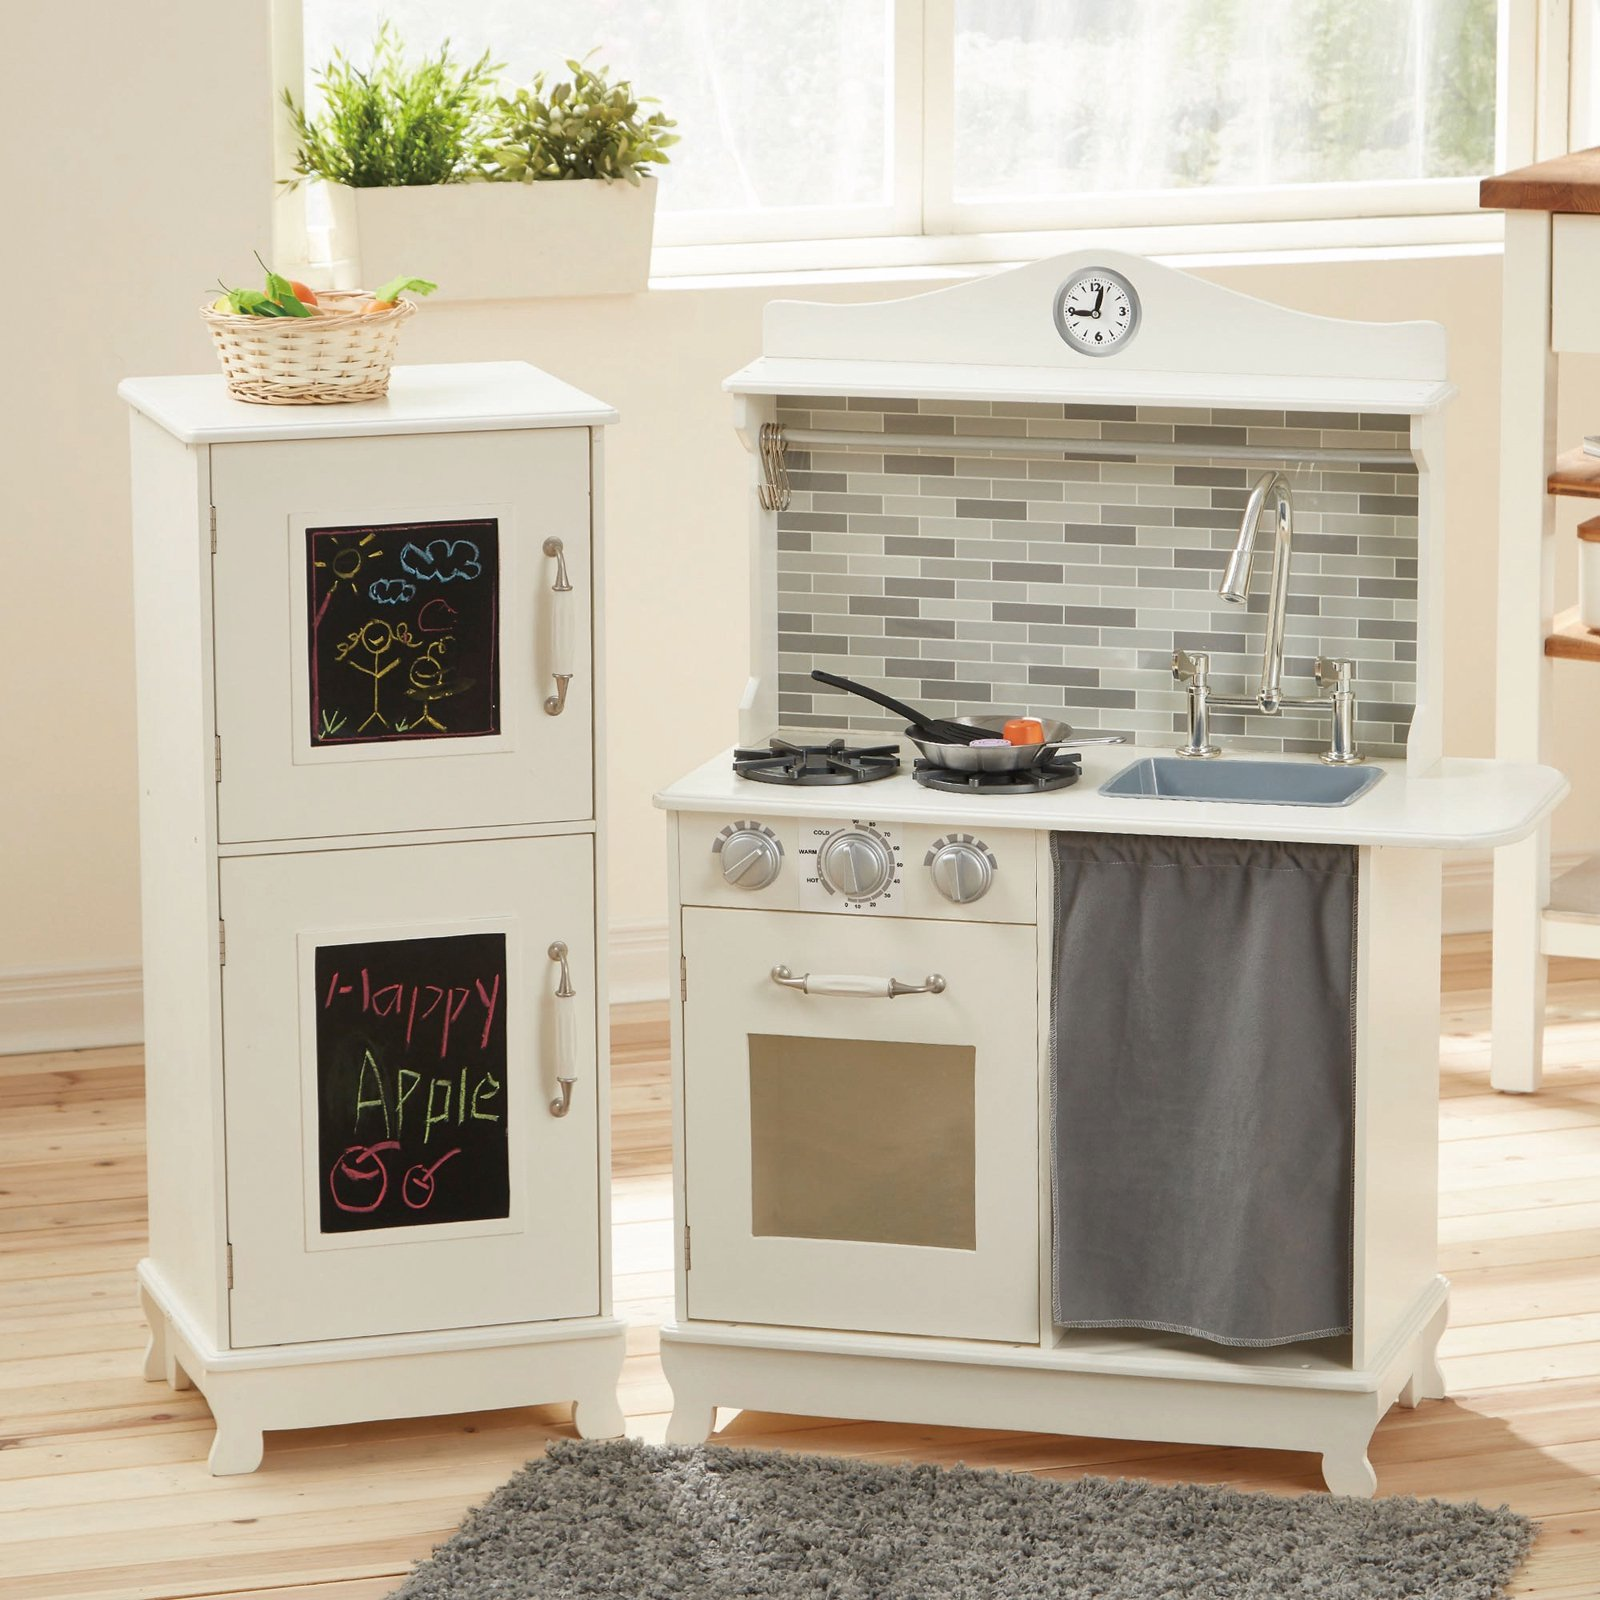 Teamson Kids - Sunday Brunch Wooden Play Kitchen - White